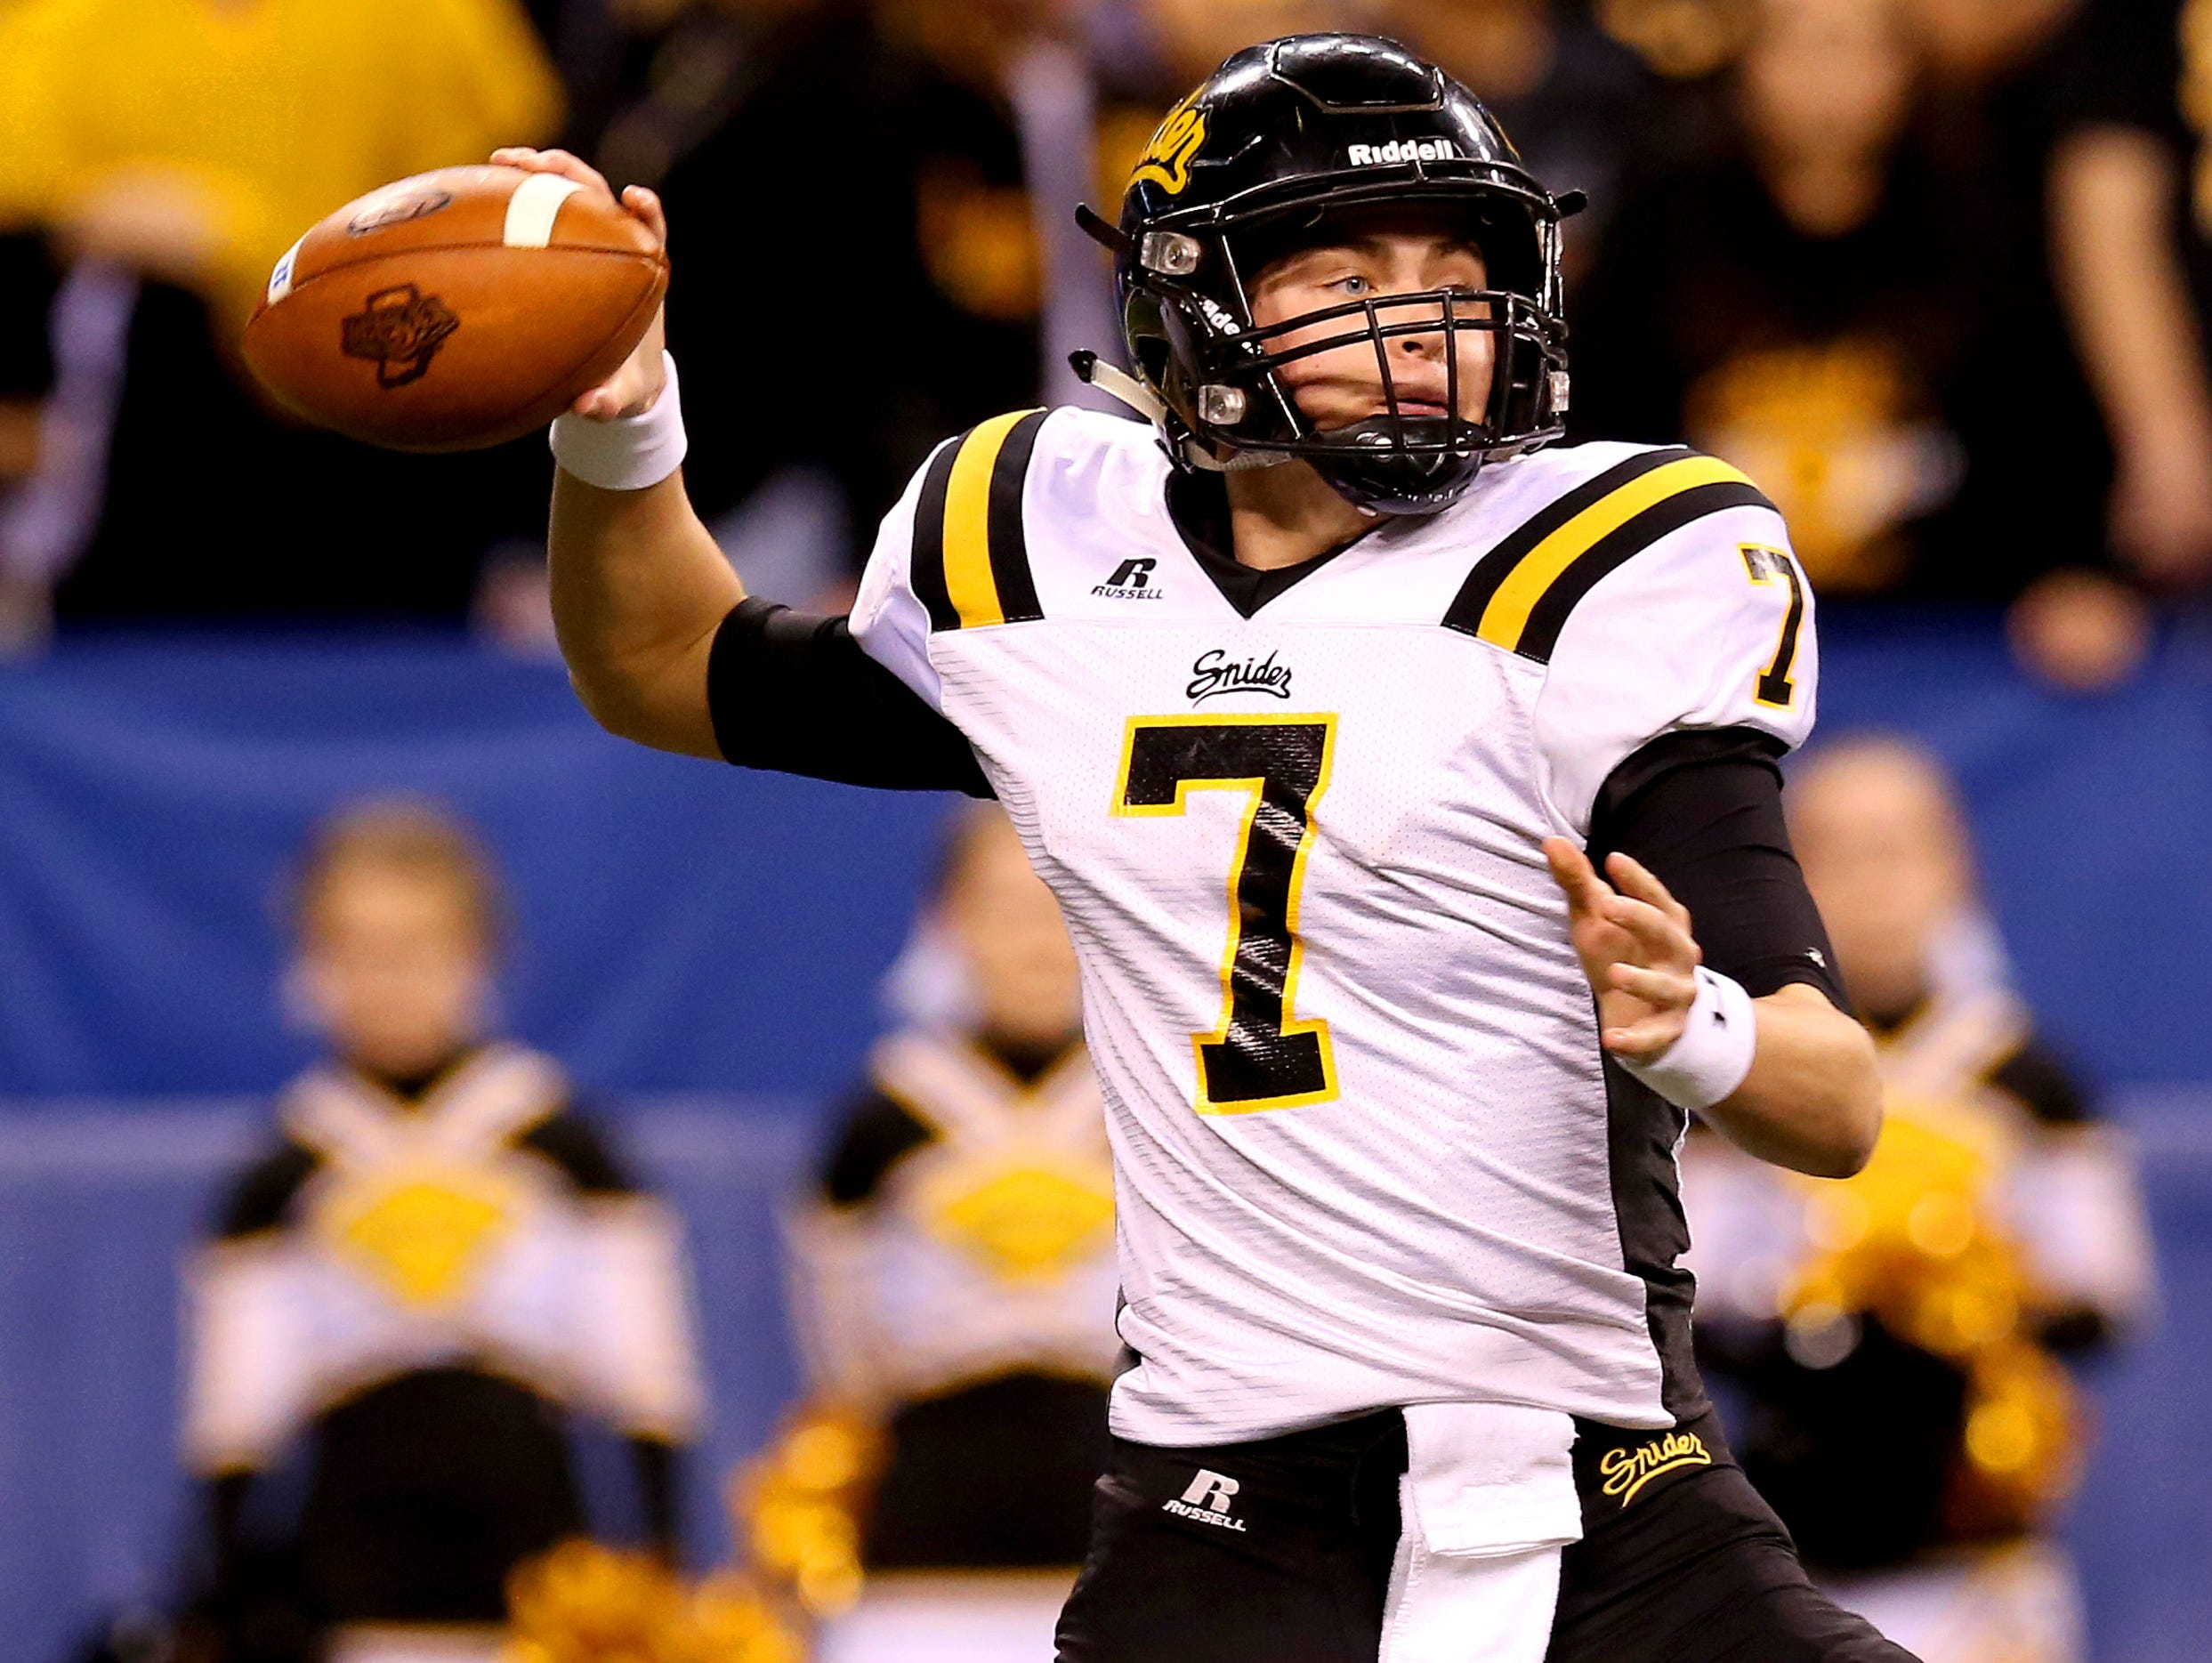 Fort Wayne Snider's Isaac Stiebeling (7) drops back to pass at Lucas Oil Stadium on Nov. 27, 2015.